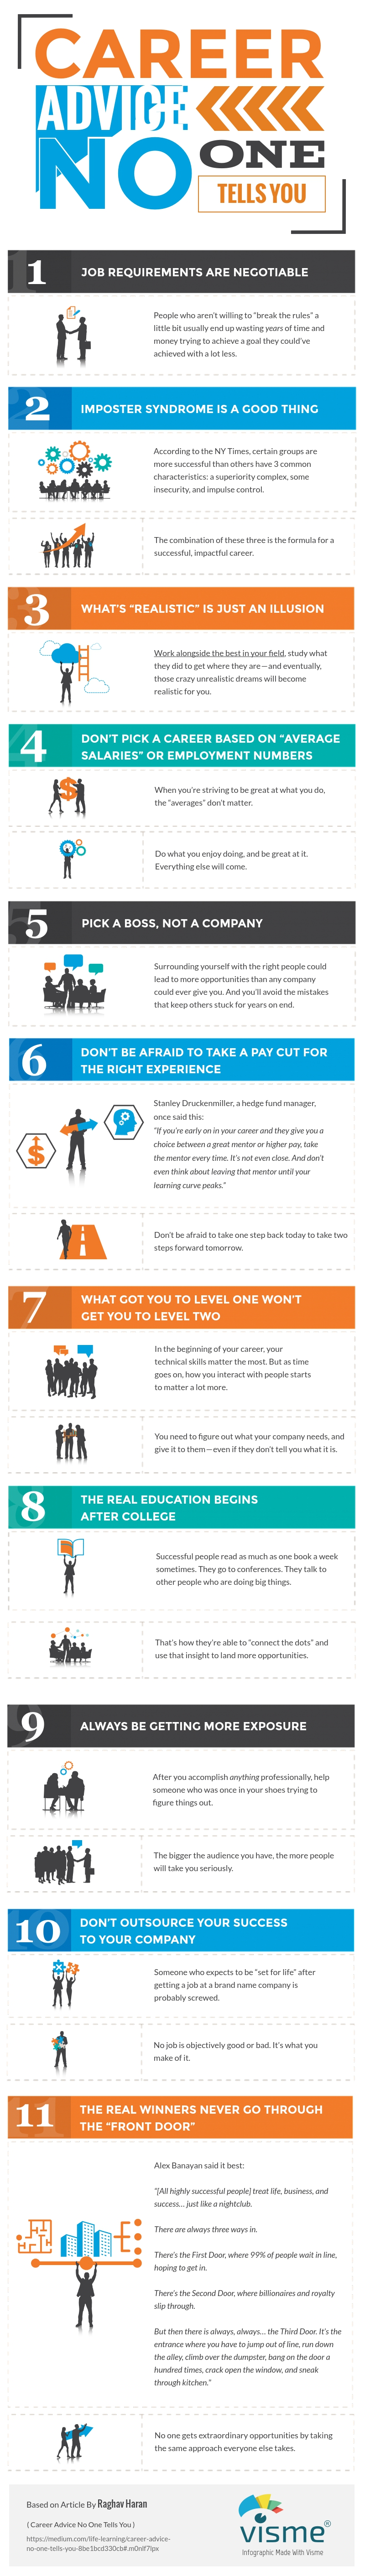 career advice nobody tells you infographic margaret buj one of the best and helpful career advice i ve is by raghav haran he pretty much summarized all the career hacks we need to know in this infographic